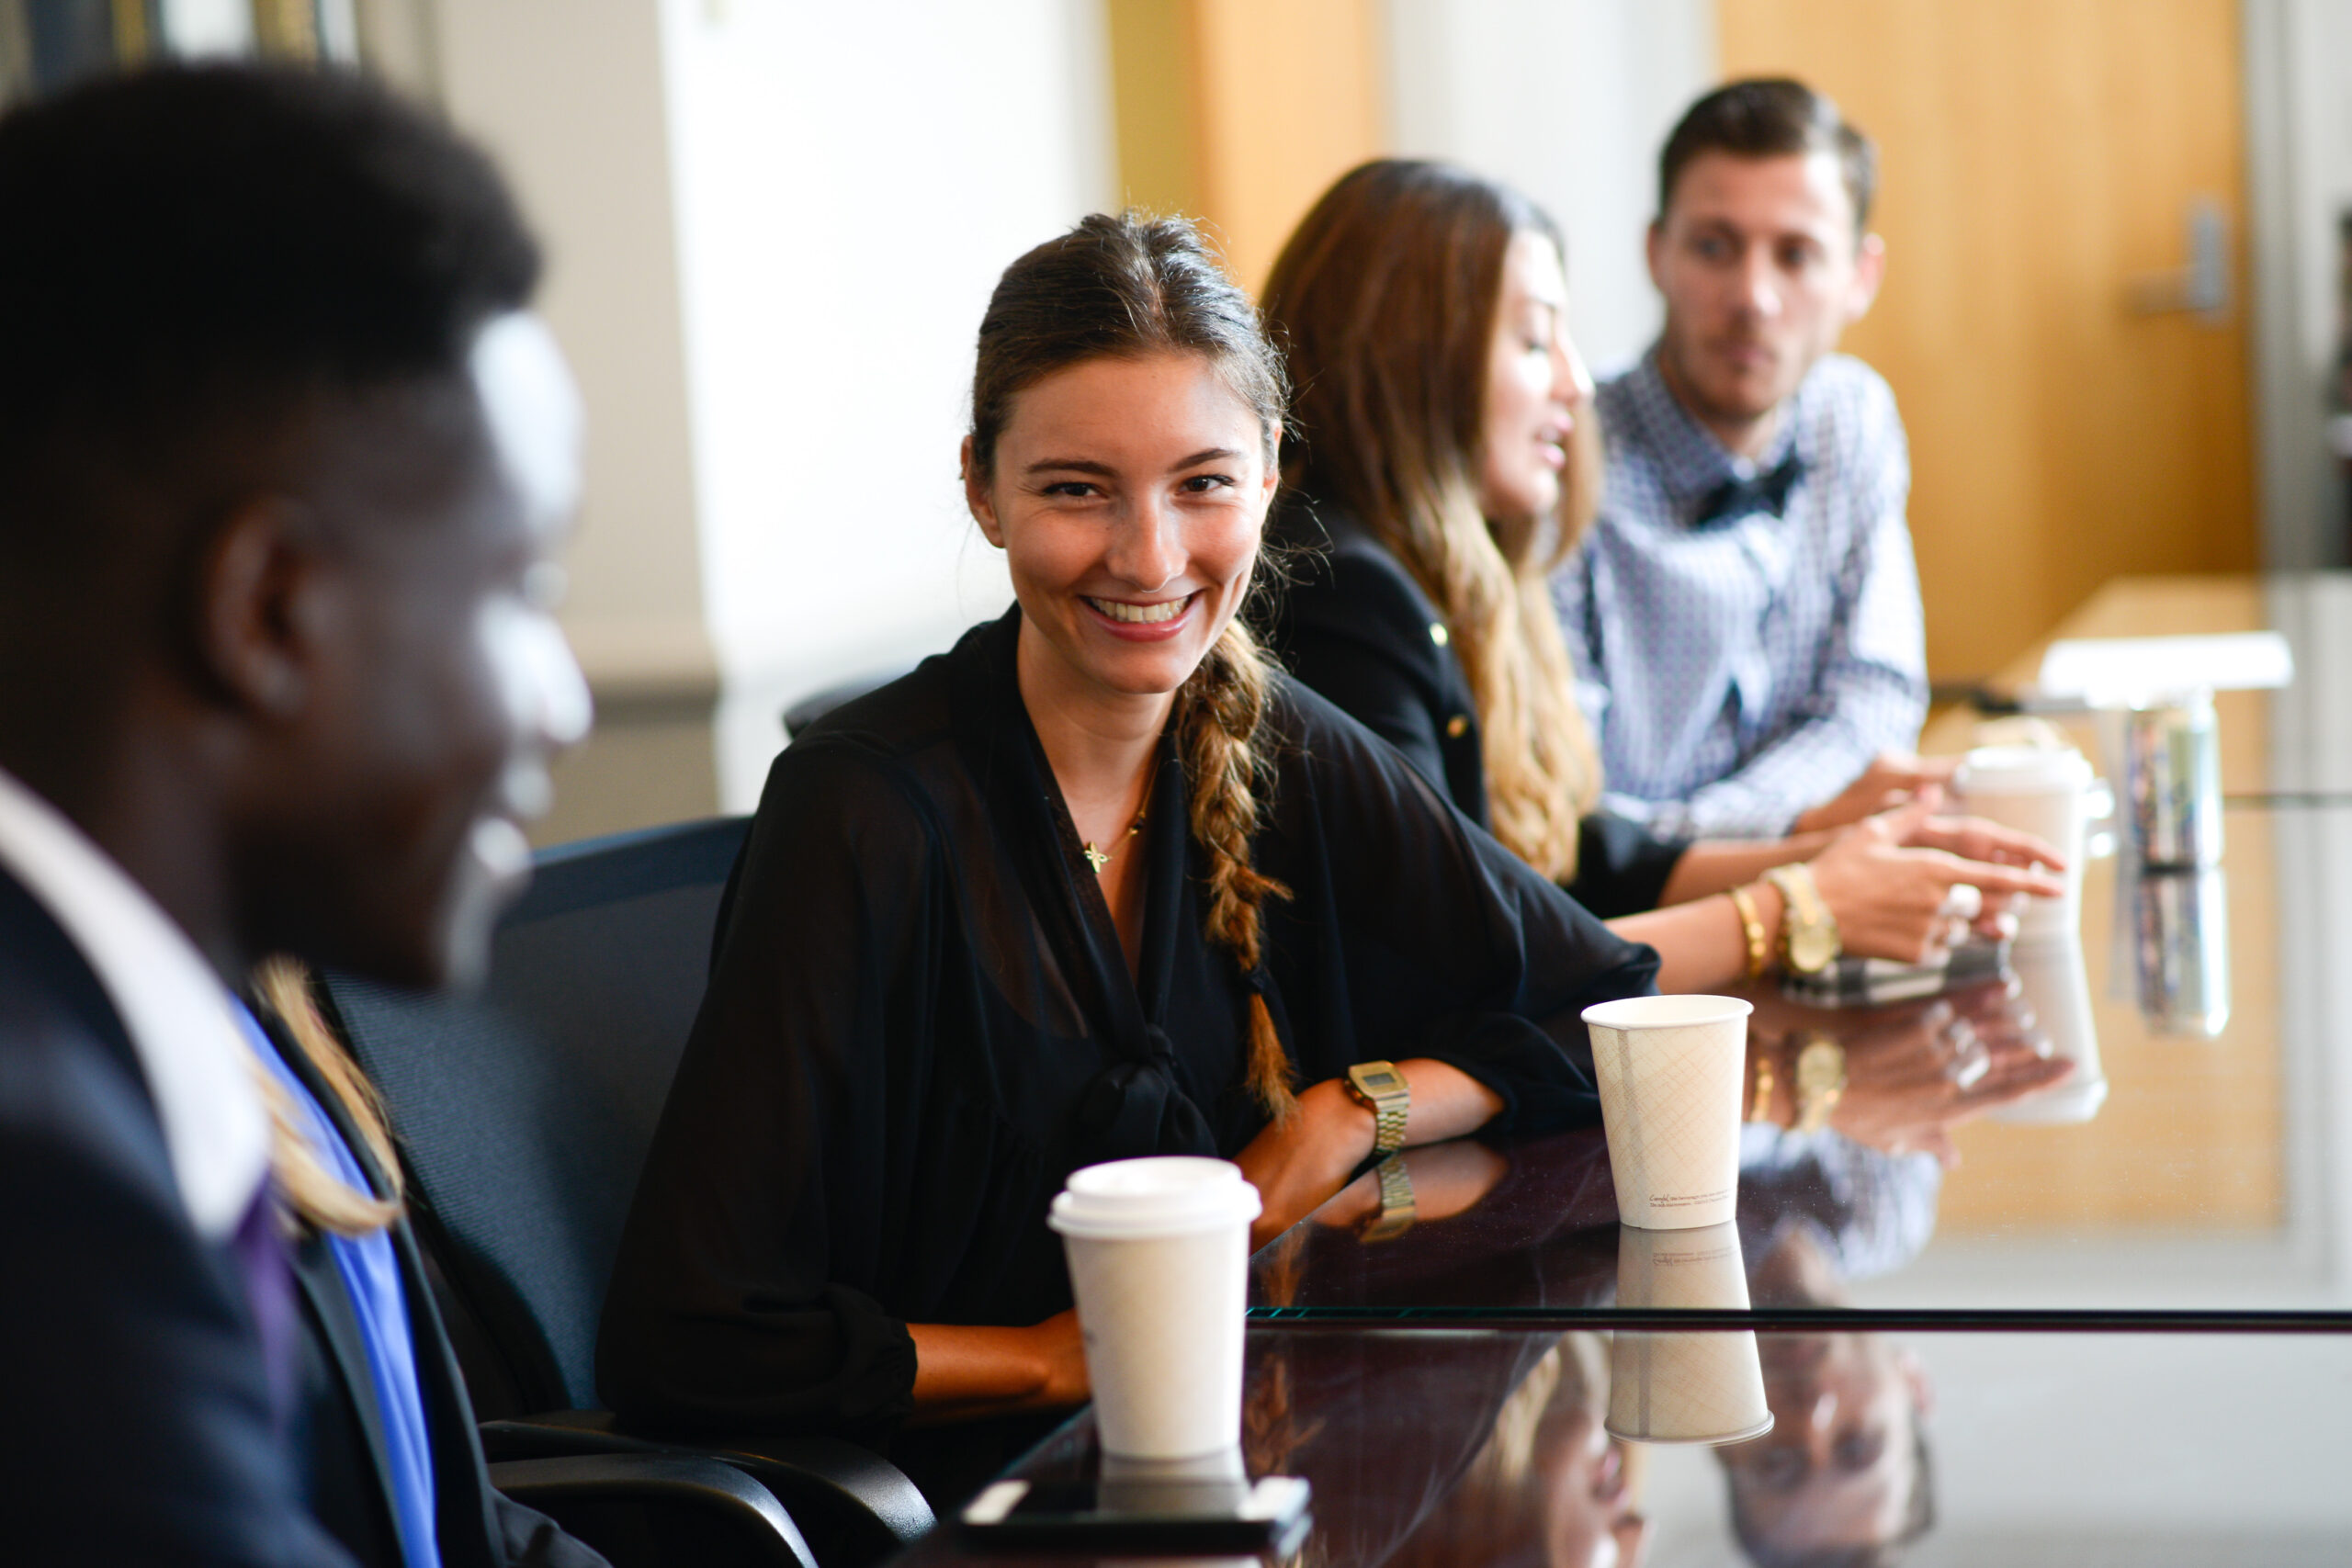 Header for Internship Page and Serves as a link to the Career Page - Student smiling at conference table